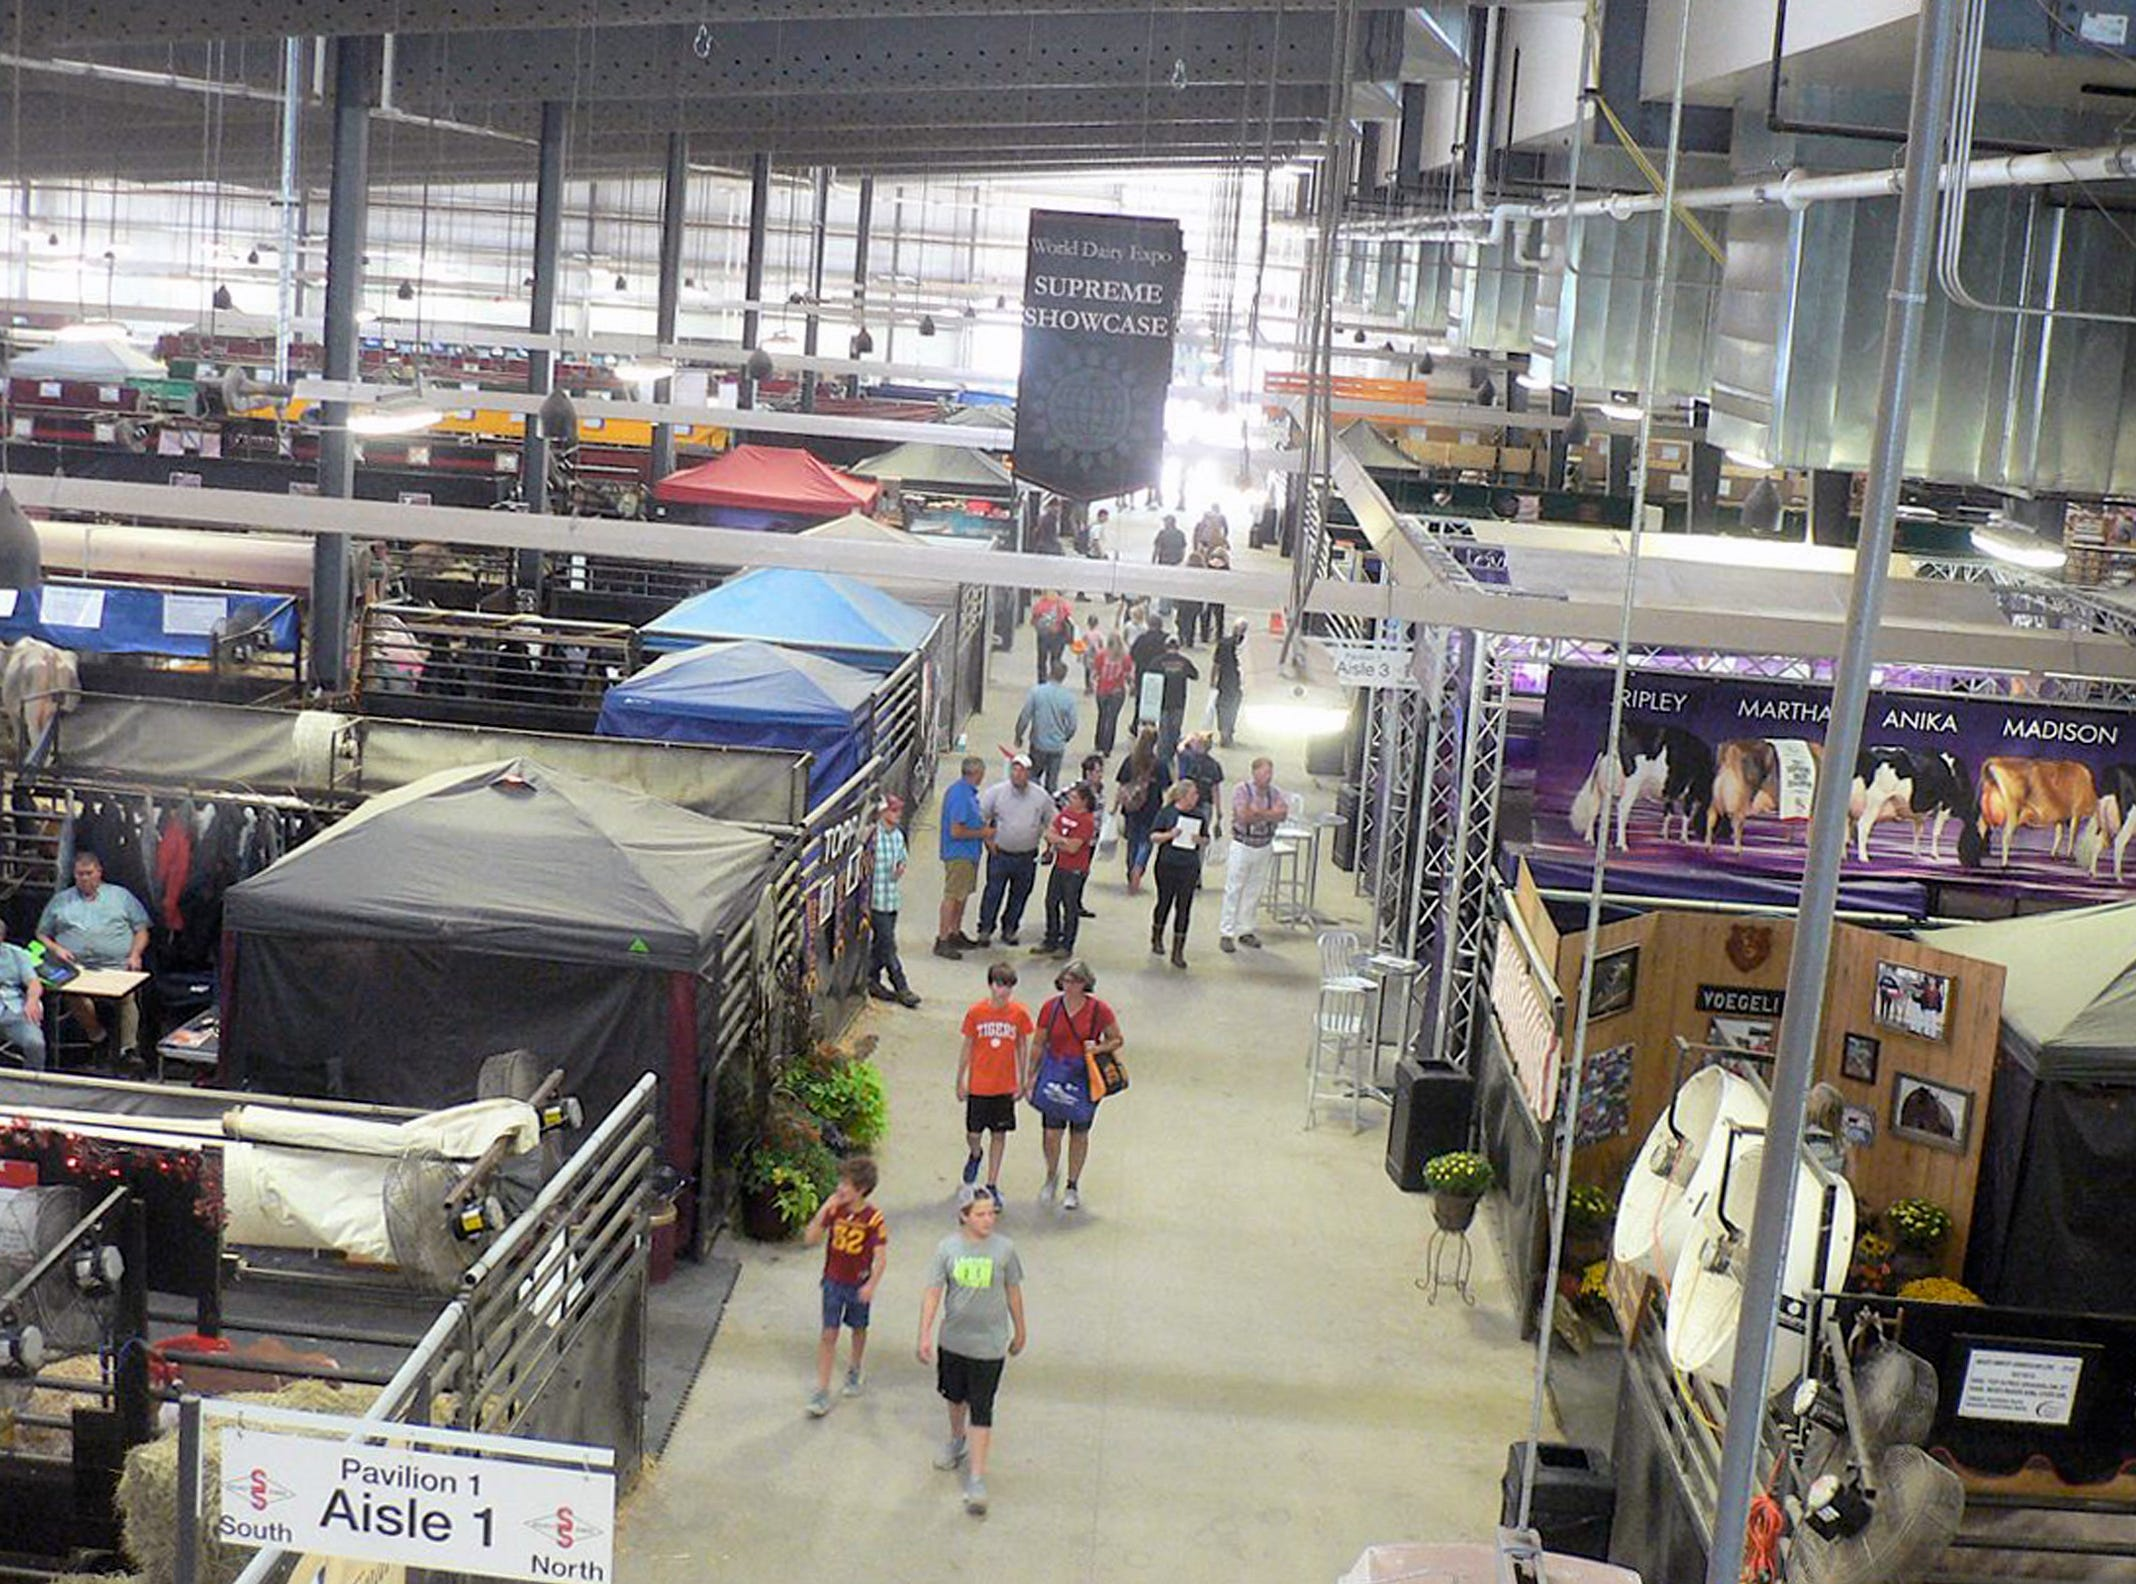 The New Holland Pavilion from above.  In addition to the cattle, note the tents used for animal and human supplies.